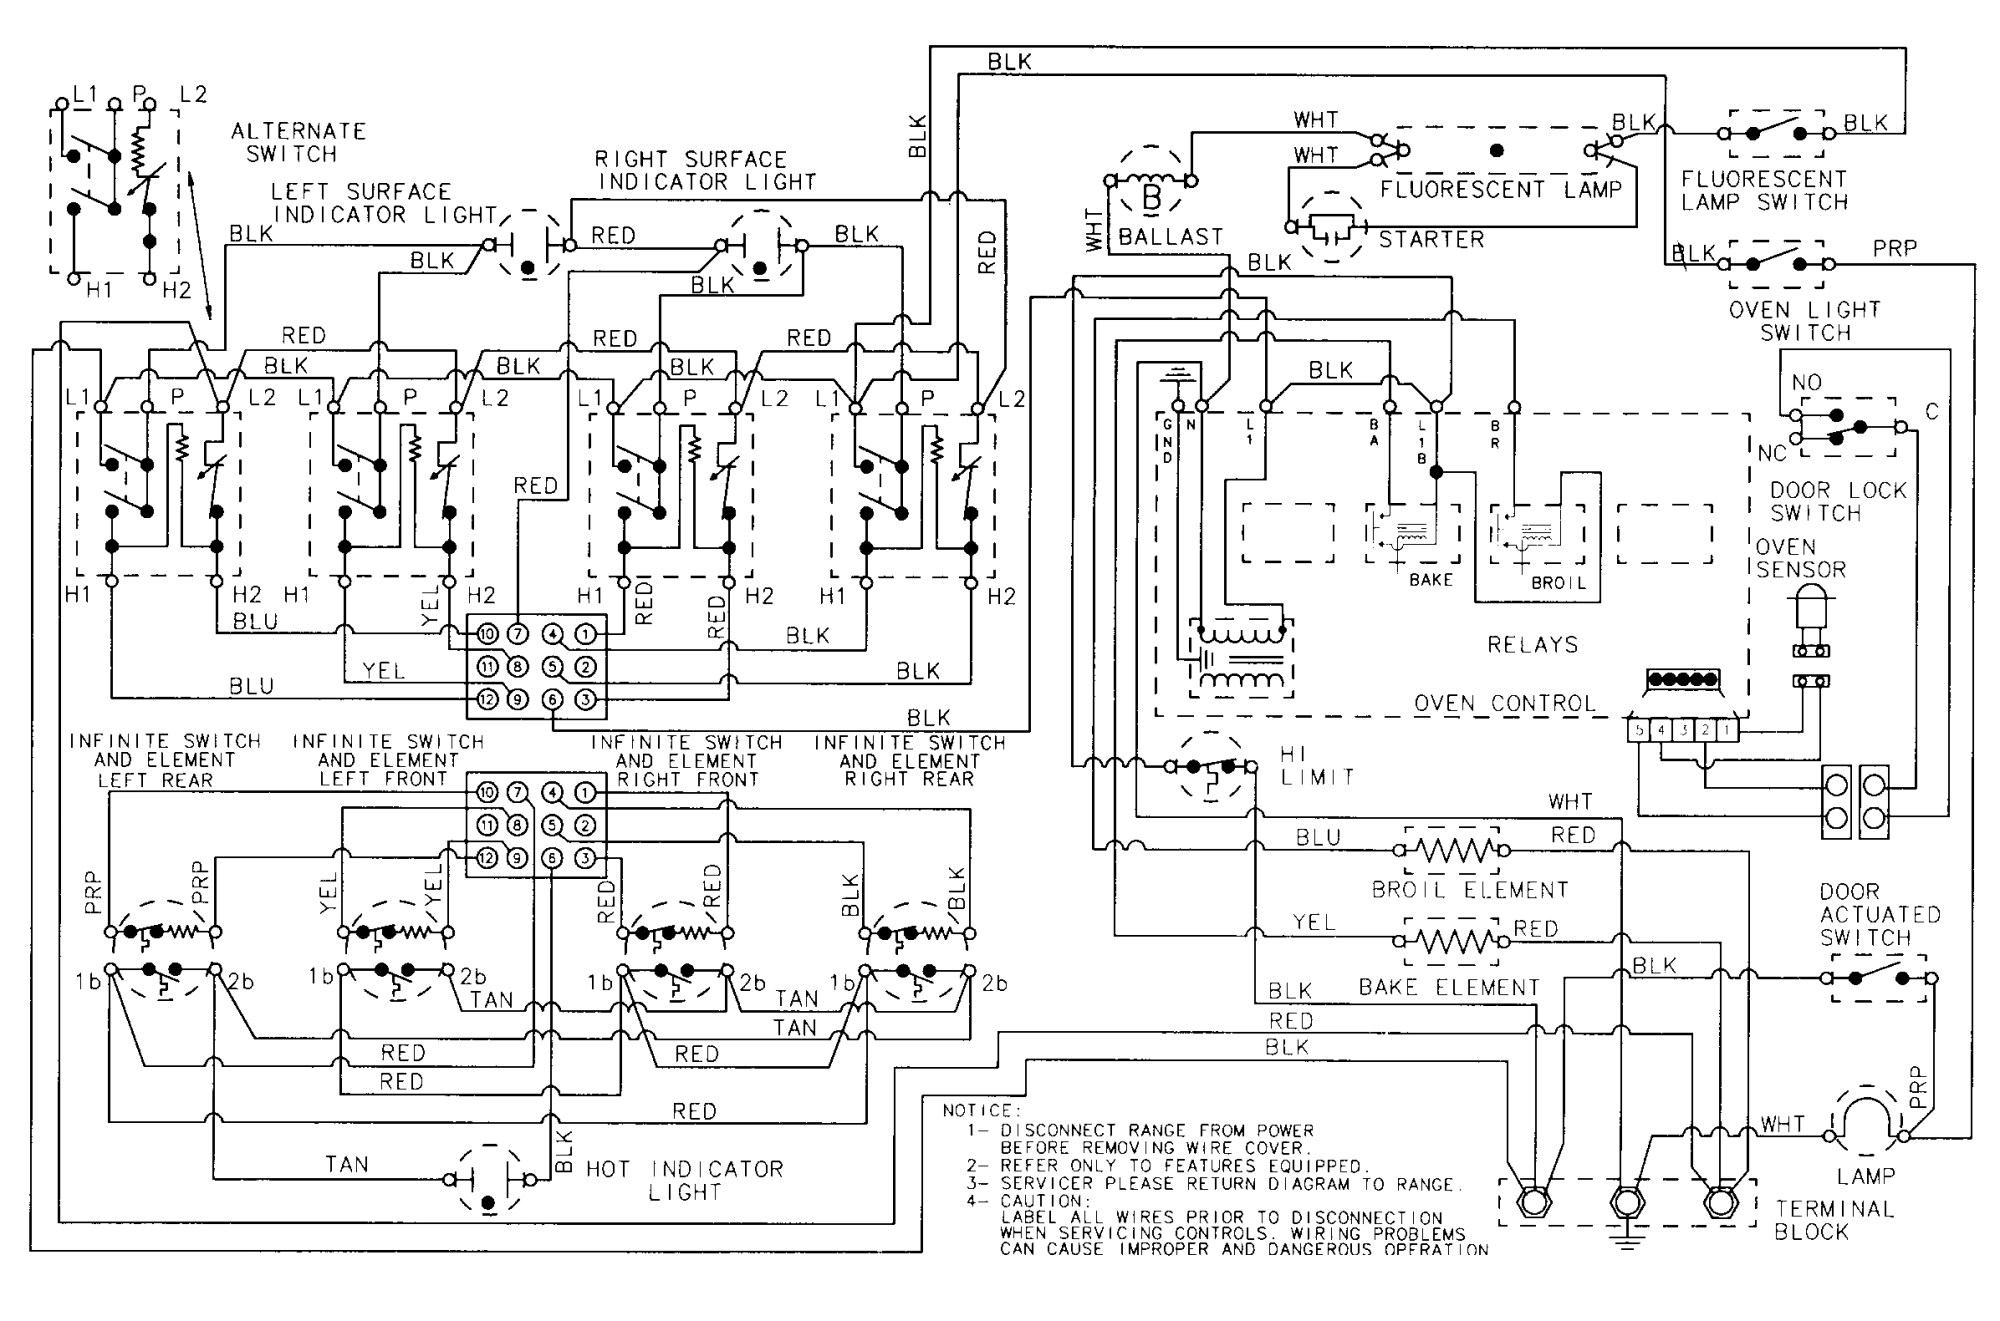 hight resolution of maytag washer wiring diagram download cre9600 range wiring information parts diagram 3 l download wiring diagram images detail name maytag washer